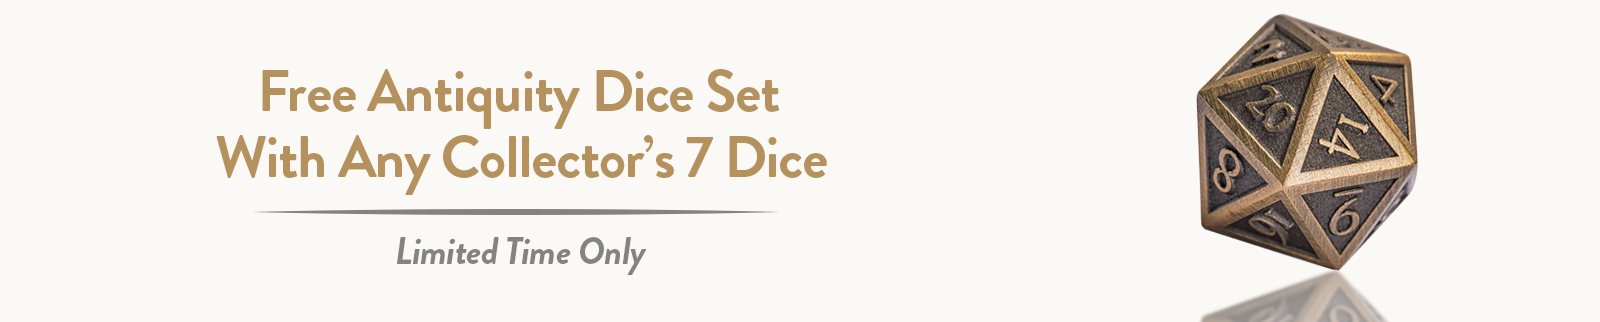 Free Antiquity Dice Set when you buy any Collector's 7 Dice Set